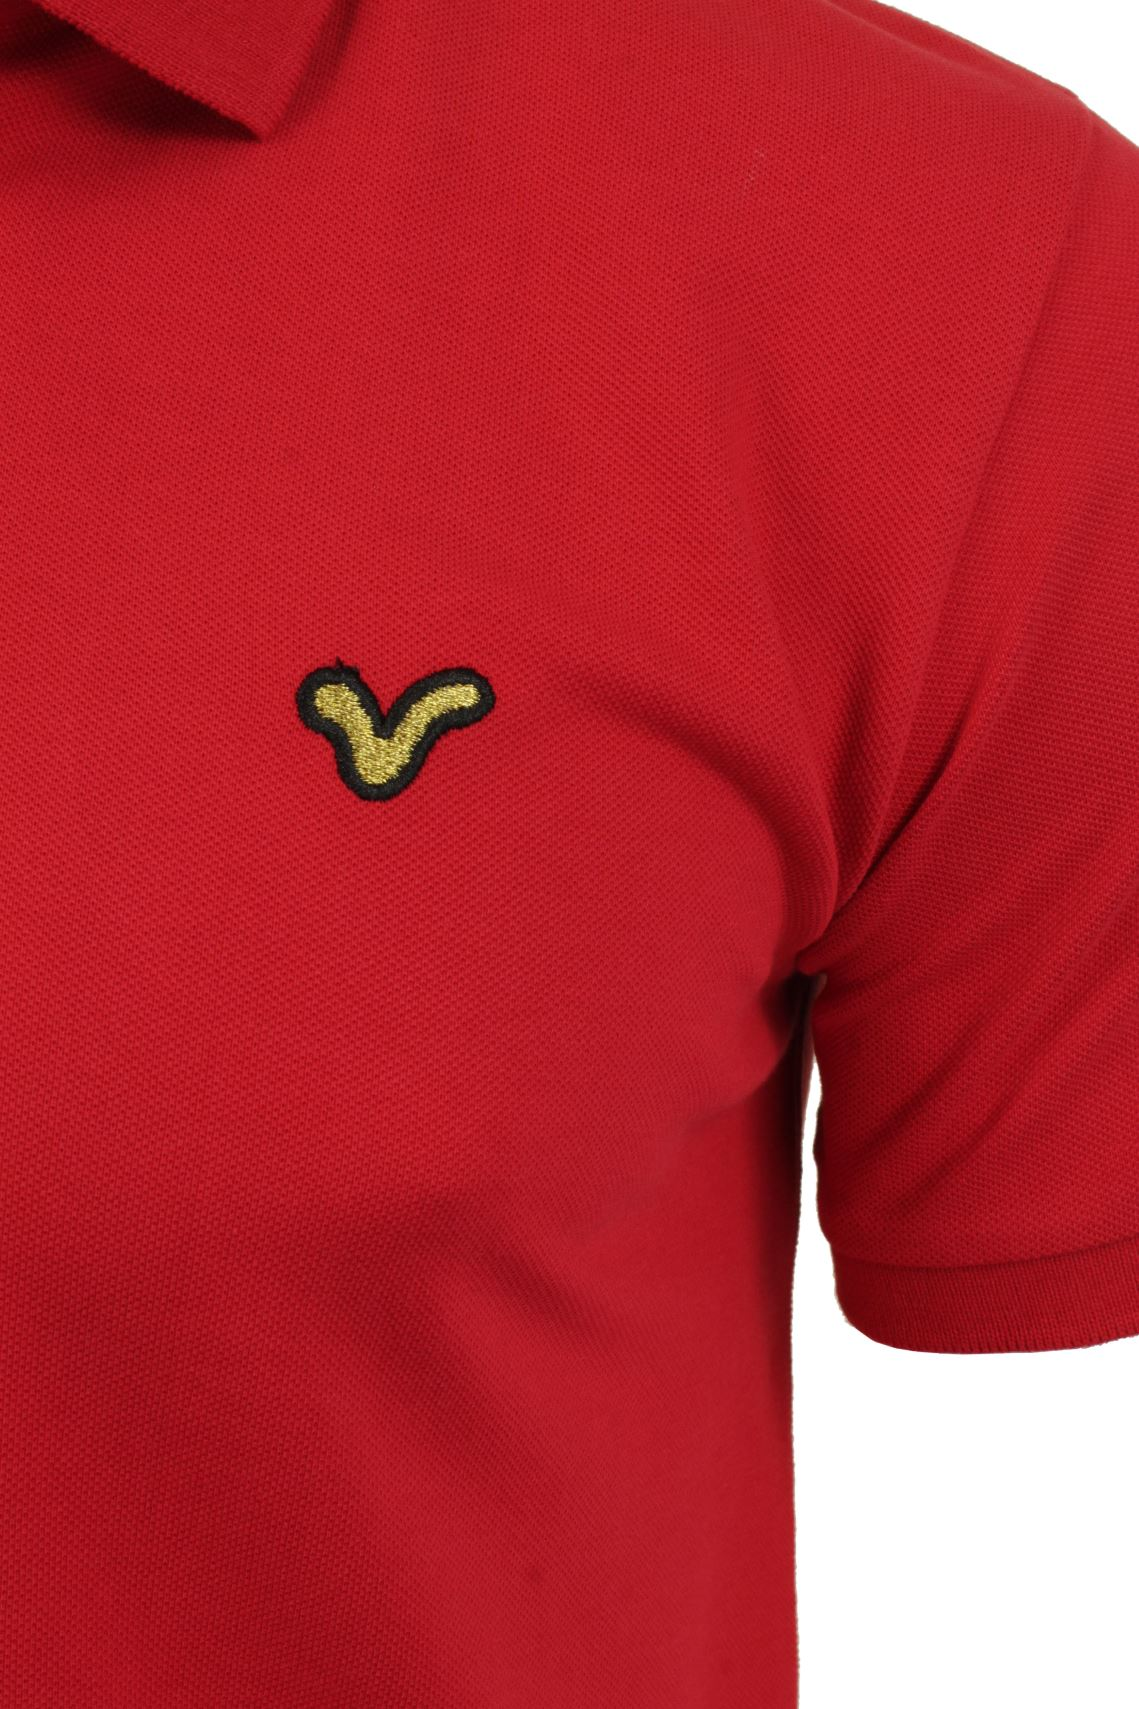 Mens Polo Shirt by Voi Jeans 'Redford'-2